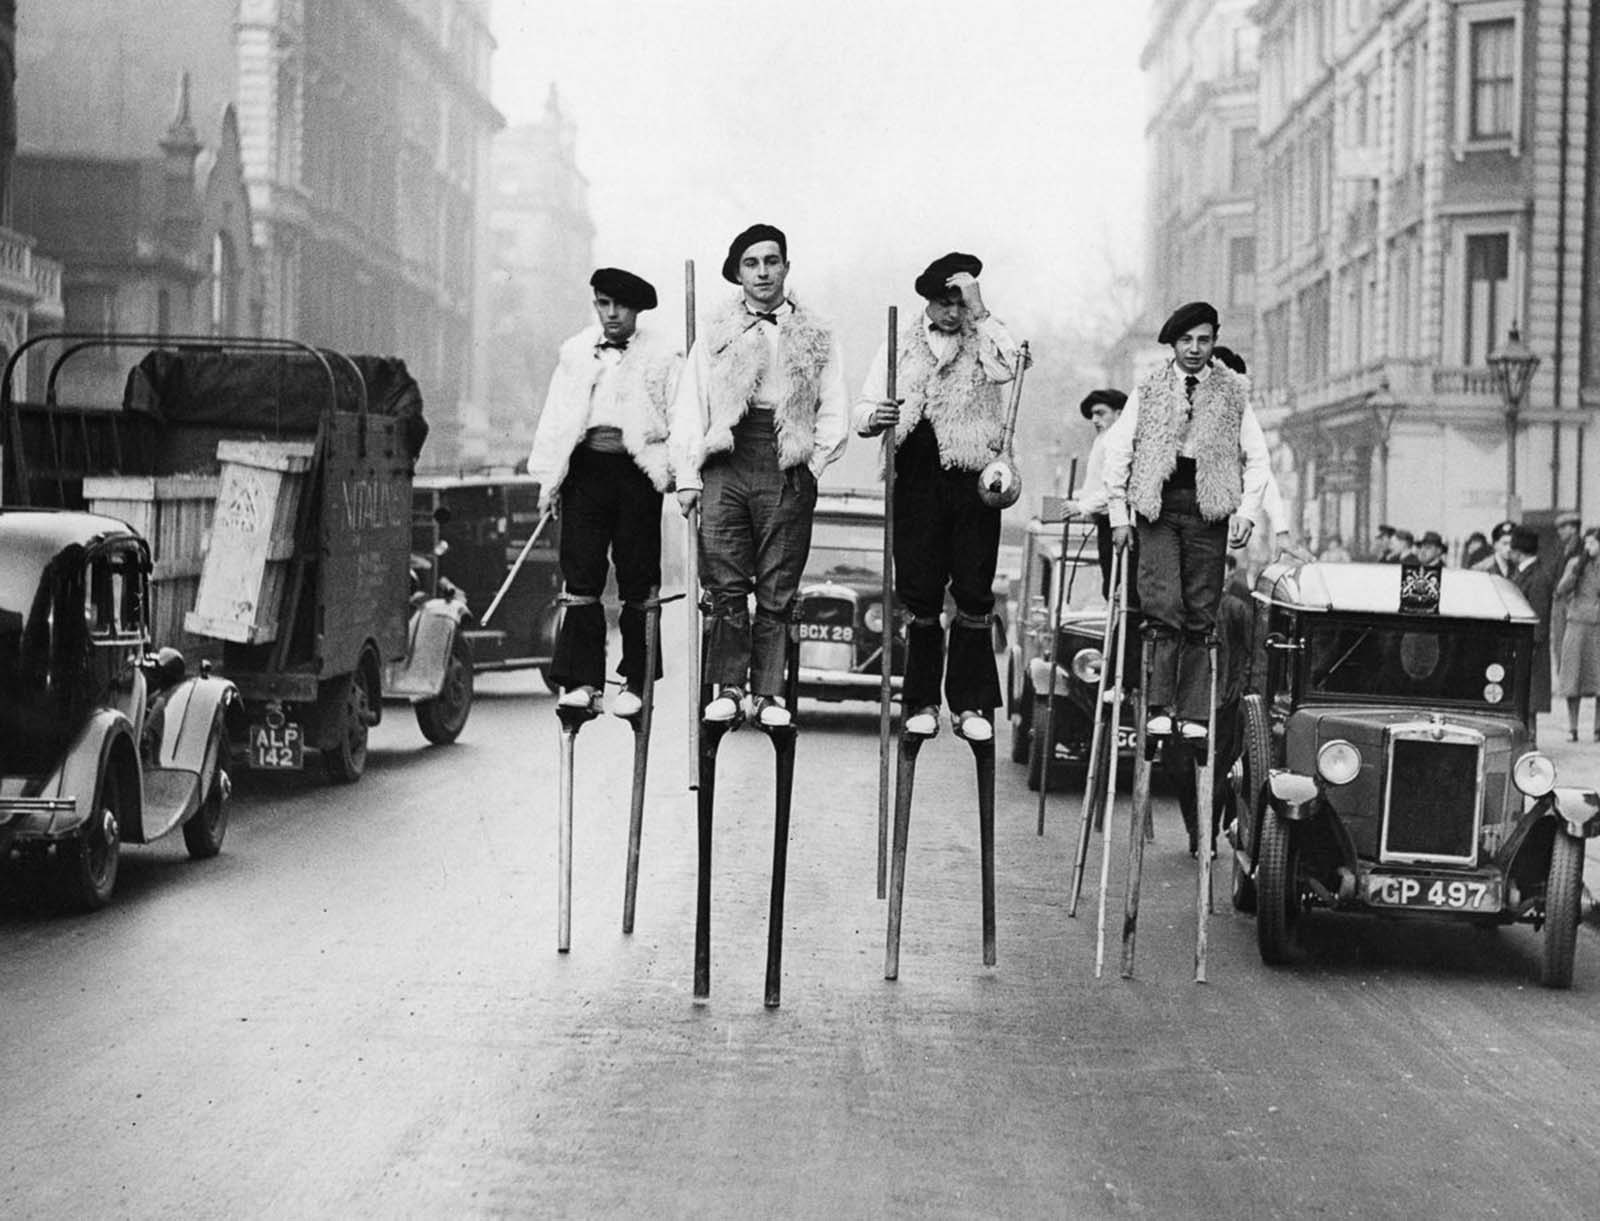 Stilt dancers from Landes walk through London on their way to a performance at the Albert Hall. 1937.